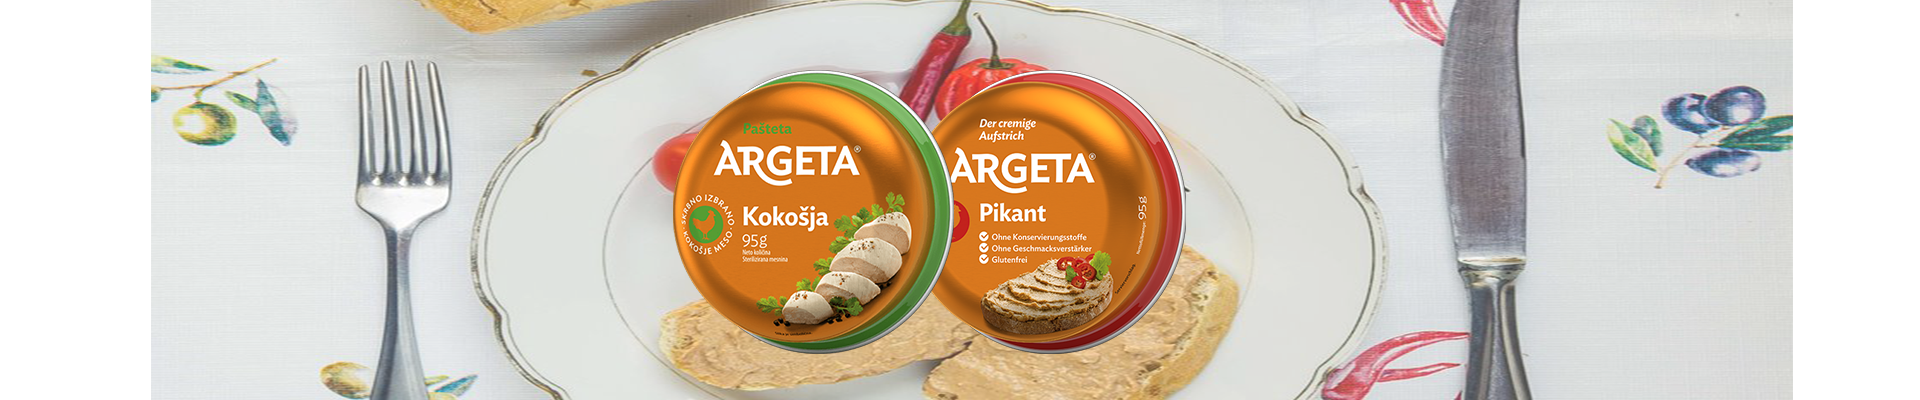 New! Chicken Argeta pate and Argeta pate spicy!